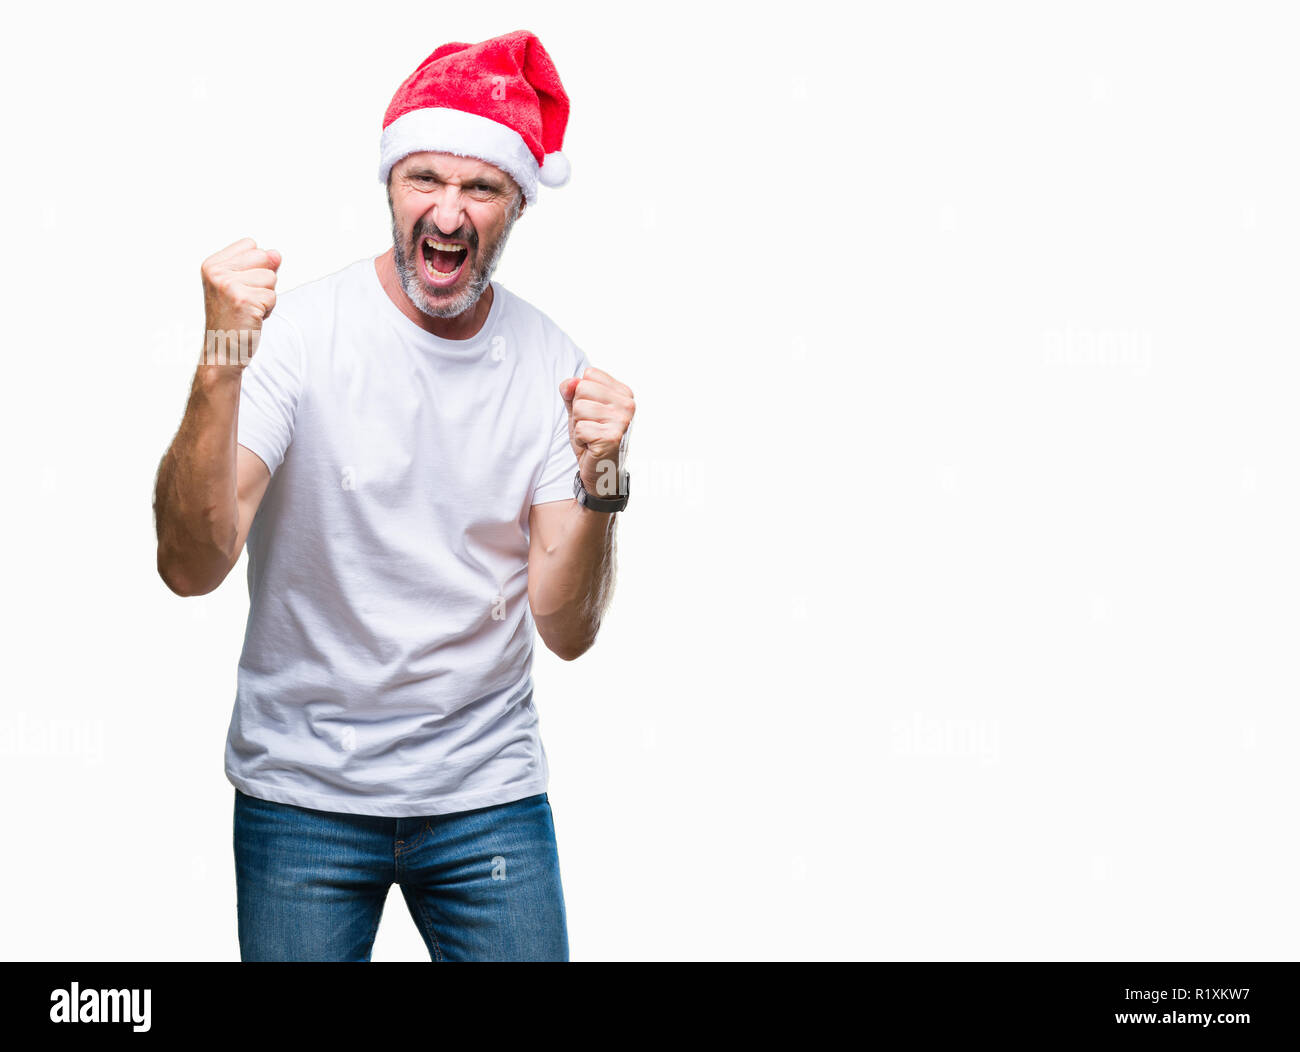 Middle age hoary senior man wearing christmas hat over isolated background very happy and excited doing winner gesture with arms raised, smiling and s - Stock Image